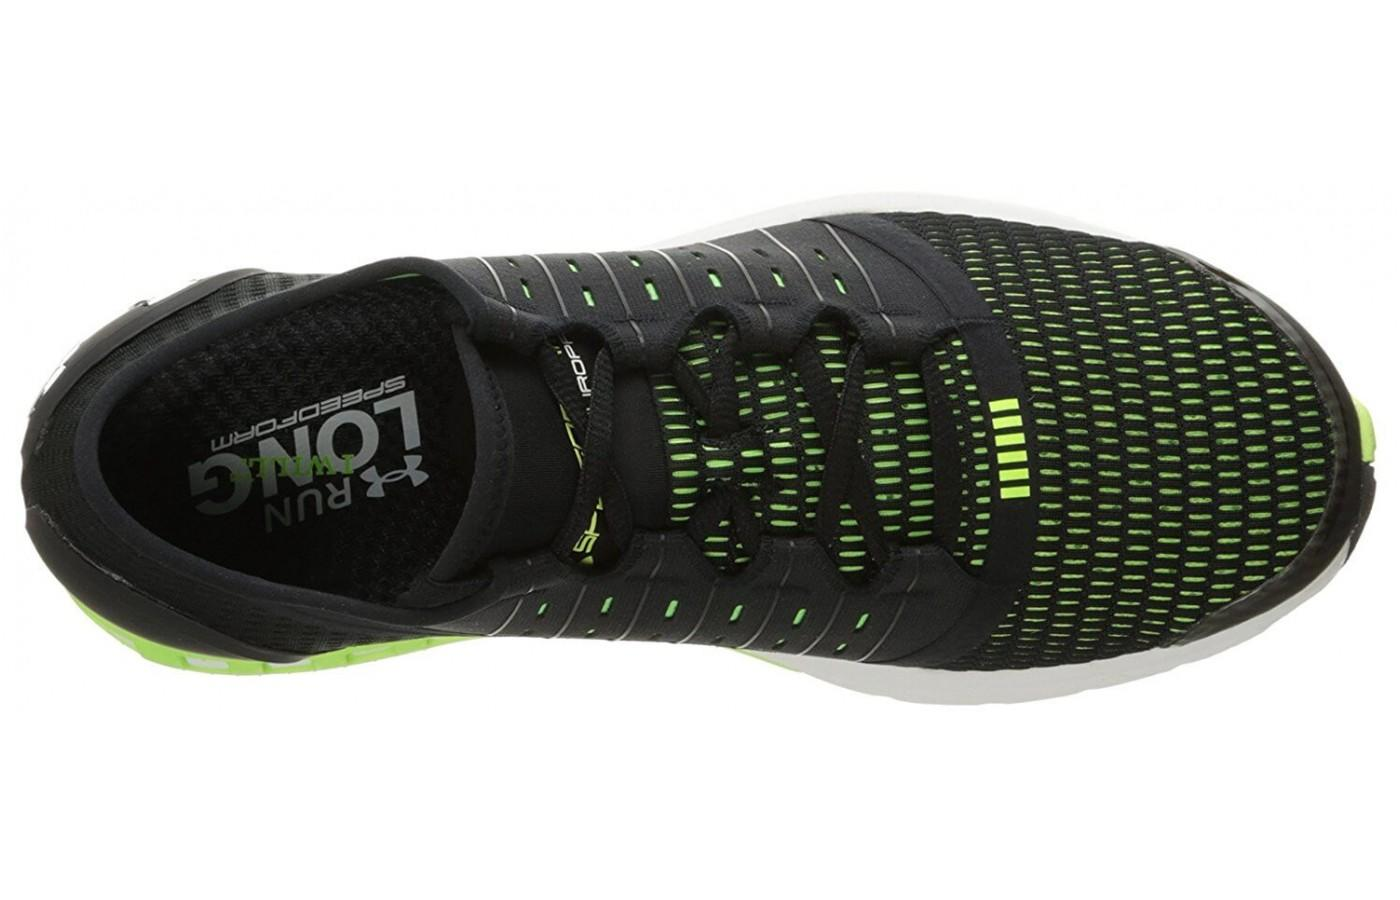 Straps on the medial and lateral side of the Speedform Europa's upper provide a snug fit.